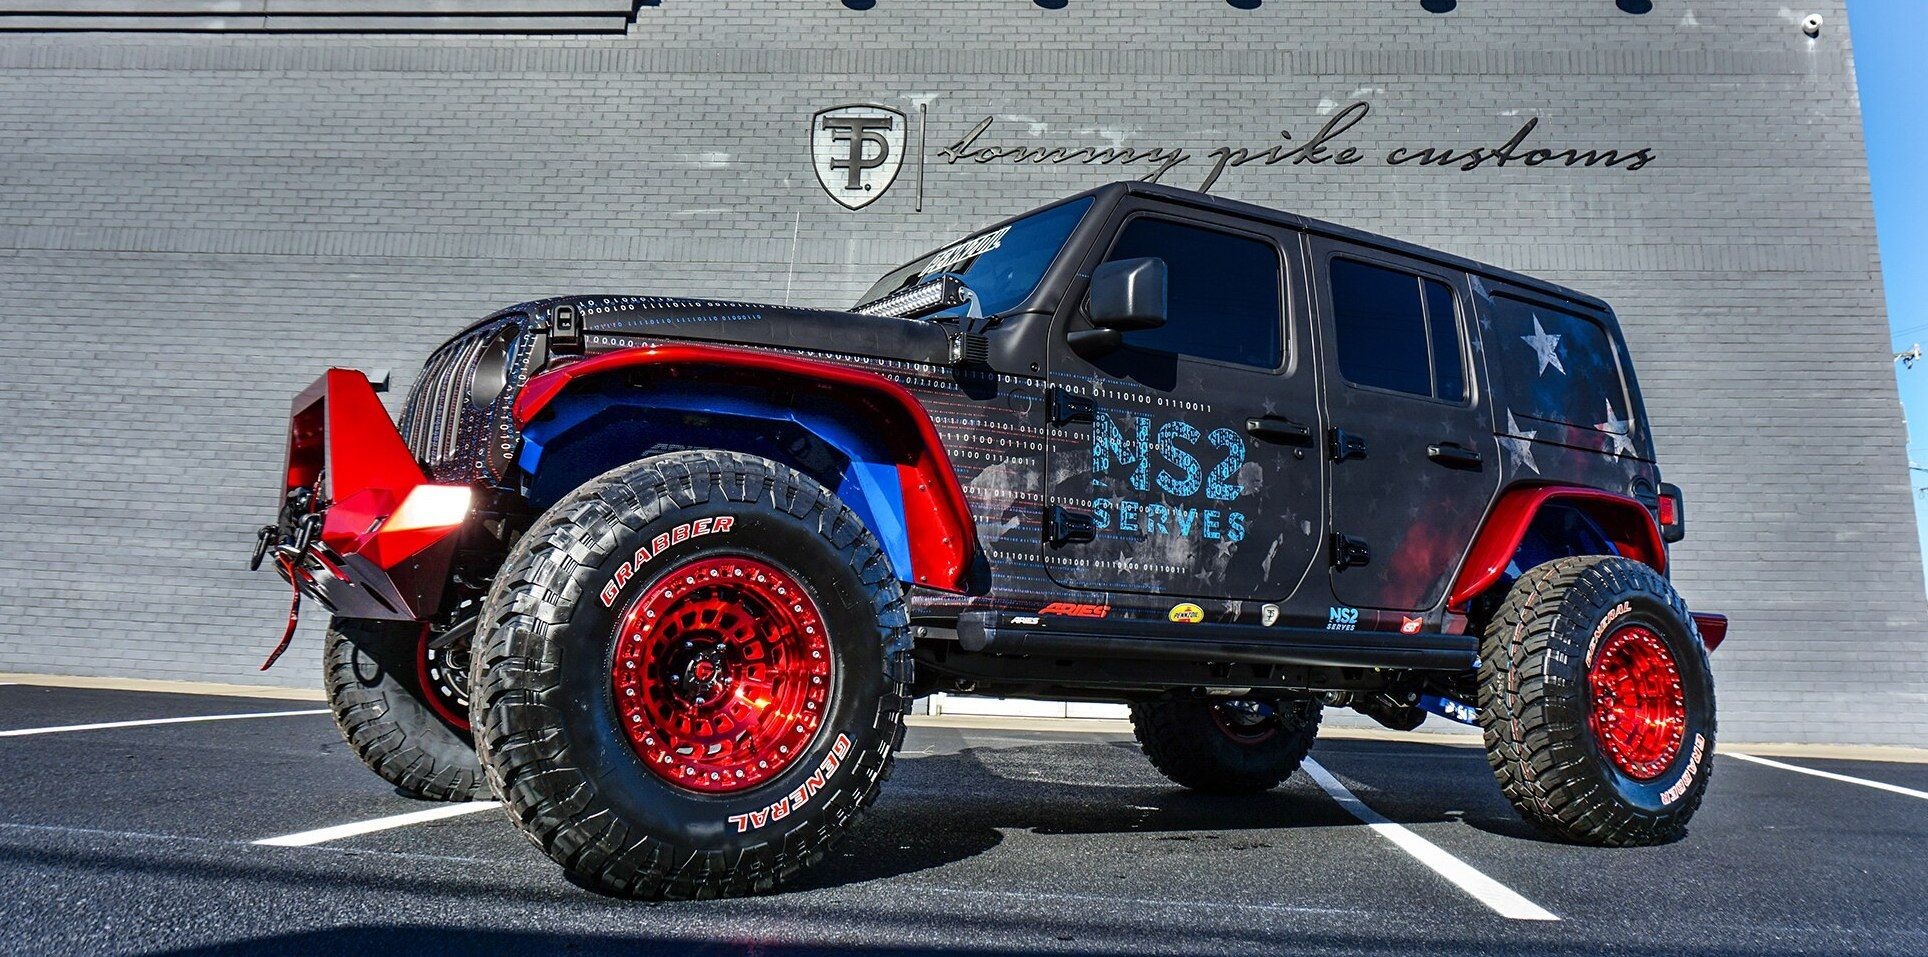 This Rowdy Jeep Wrangler Rubicon Continues Auction To Benefit From